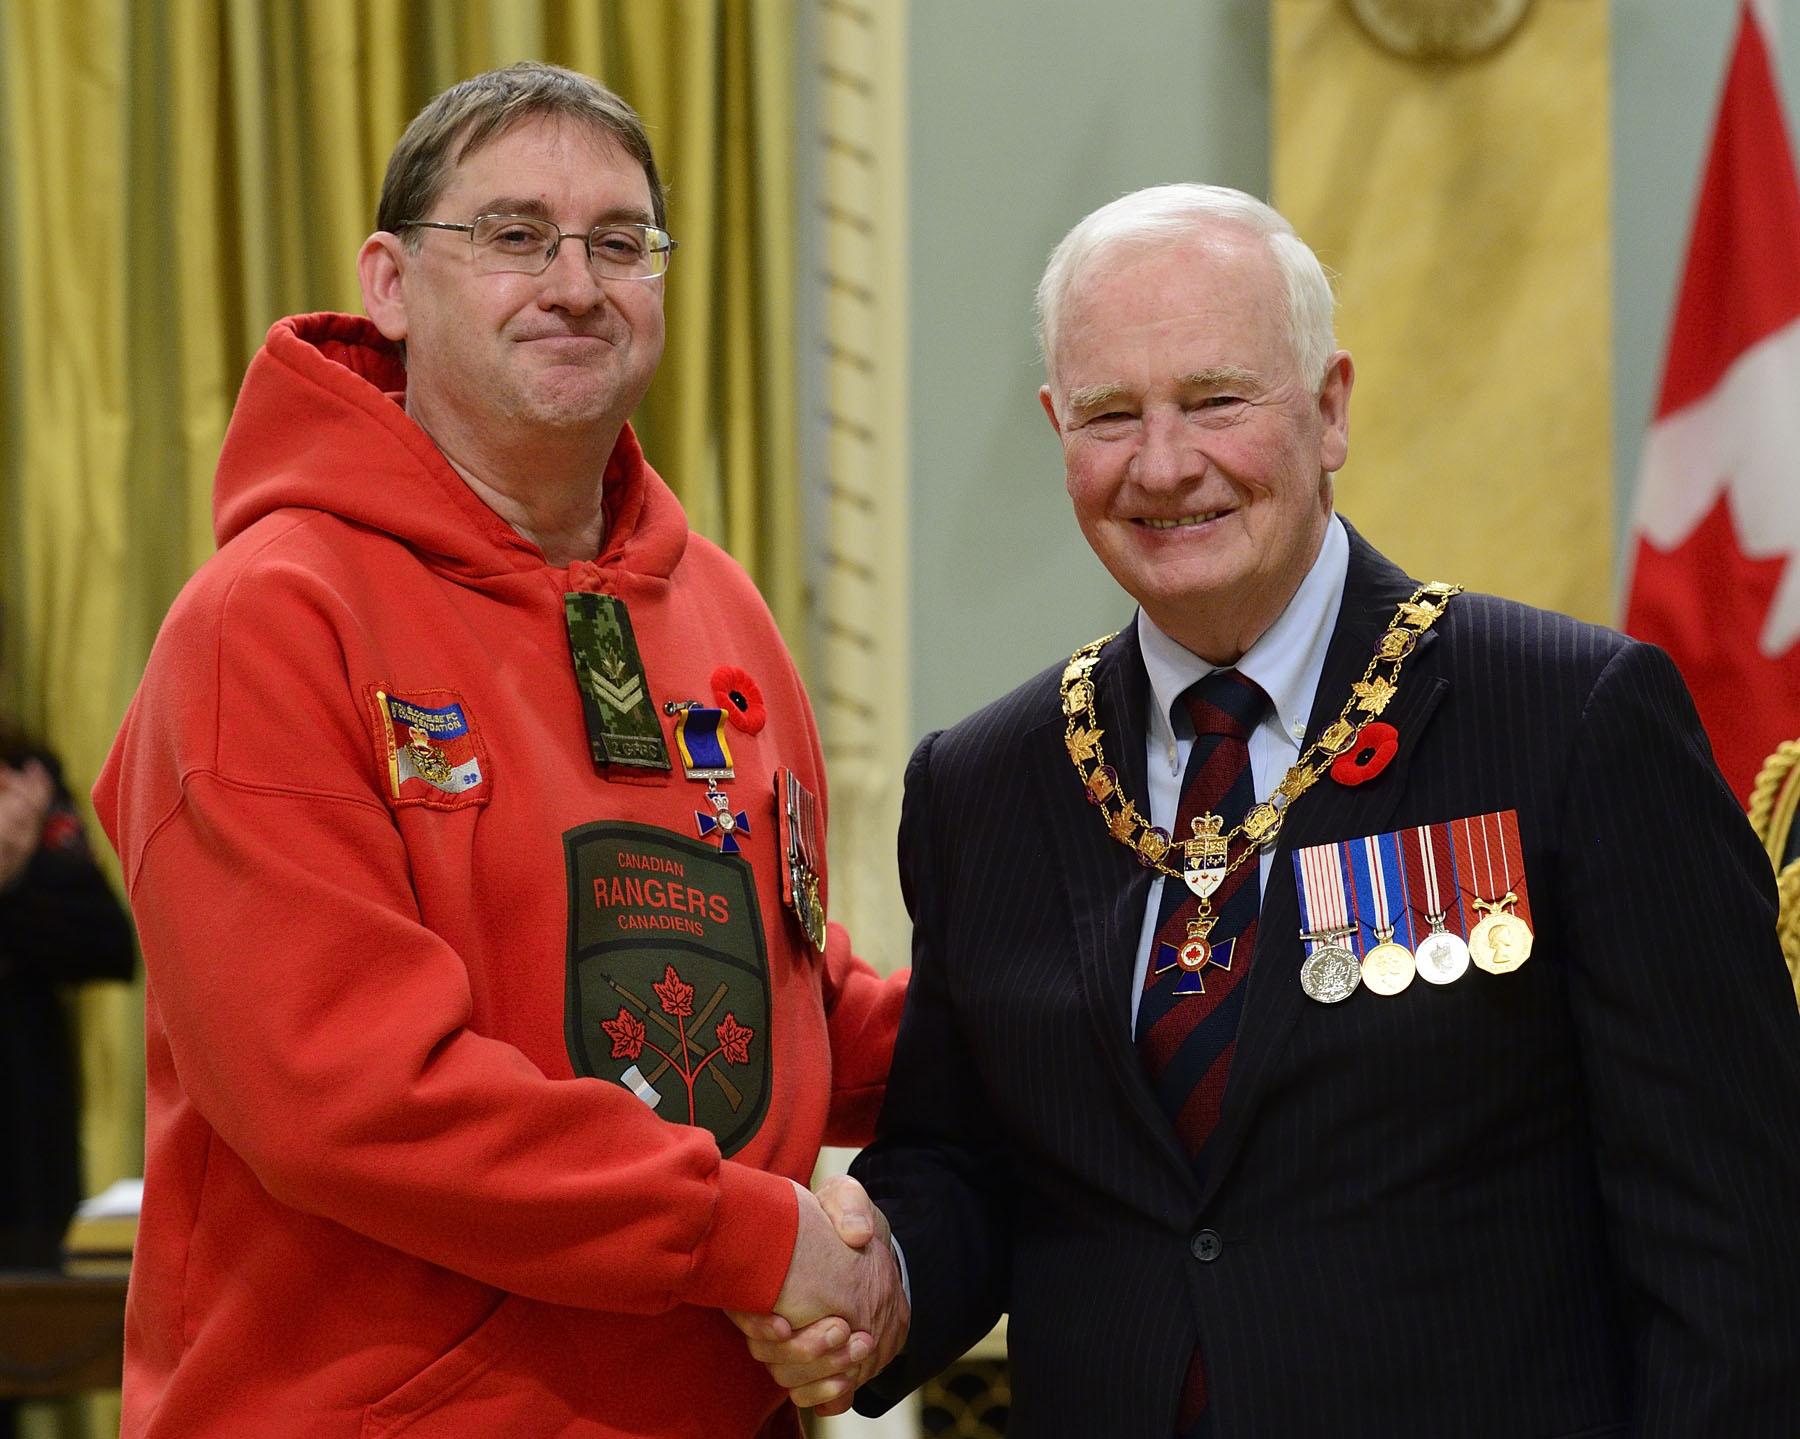 His Excellency presented the Order of Military Merit at the Member level (M.M.M.) to Ranger Martin Scott, M.M.M., C.D., Aupaluk Canadian Ranger Patrol, Aupaluk, Quebec.